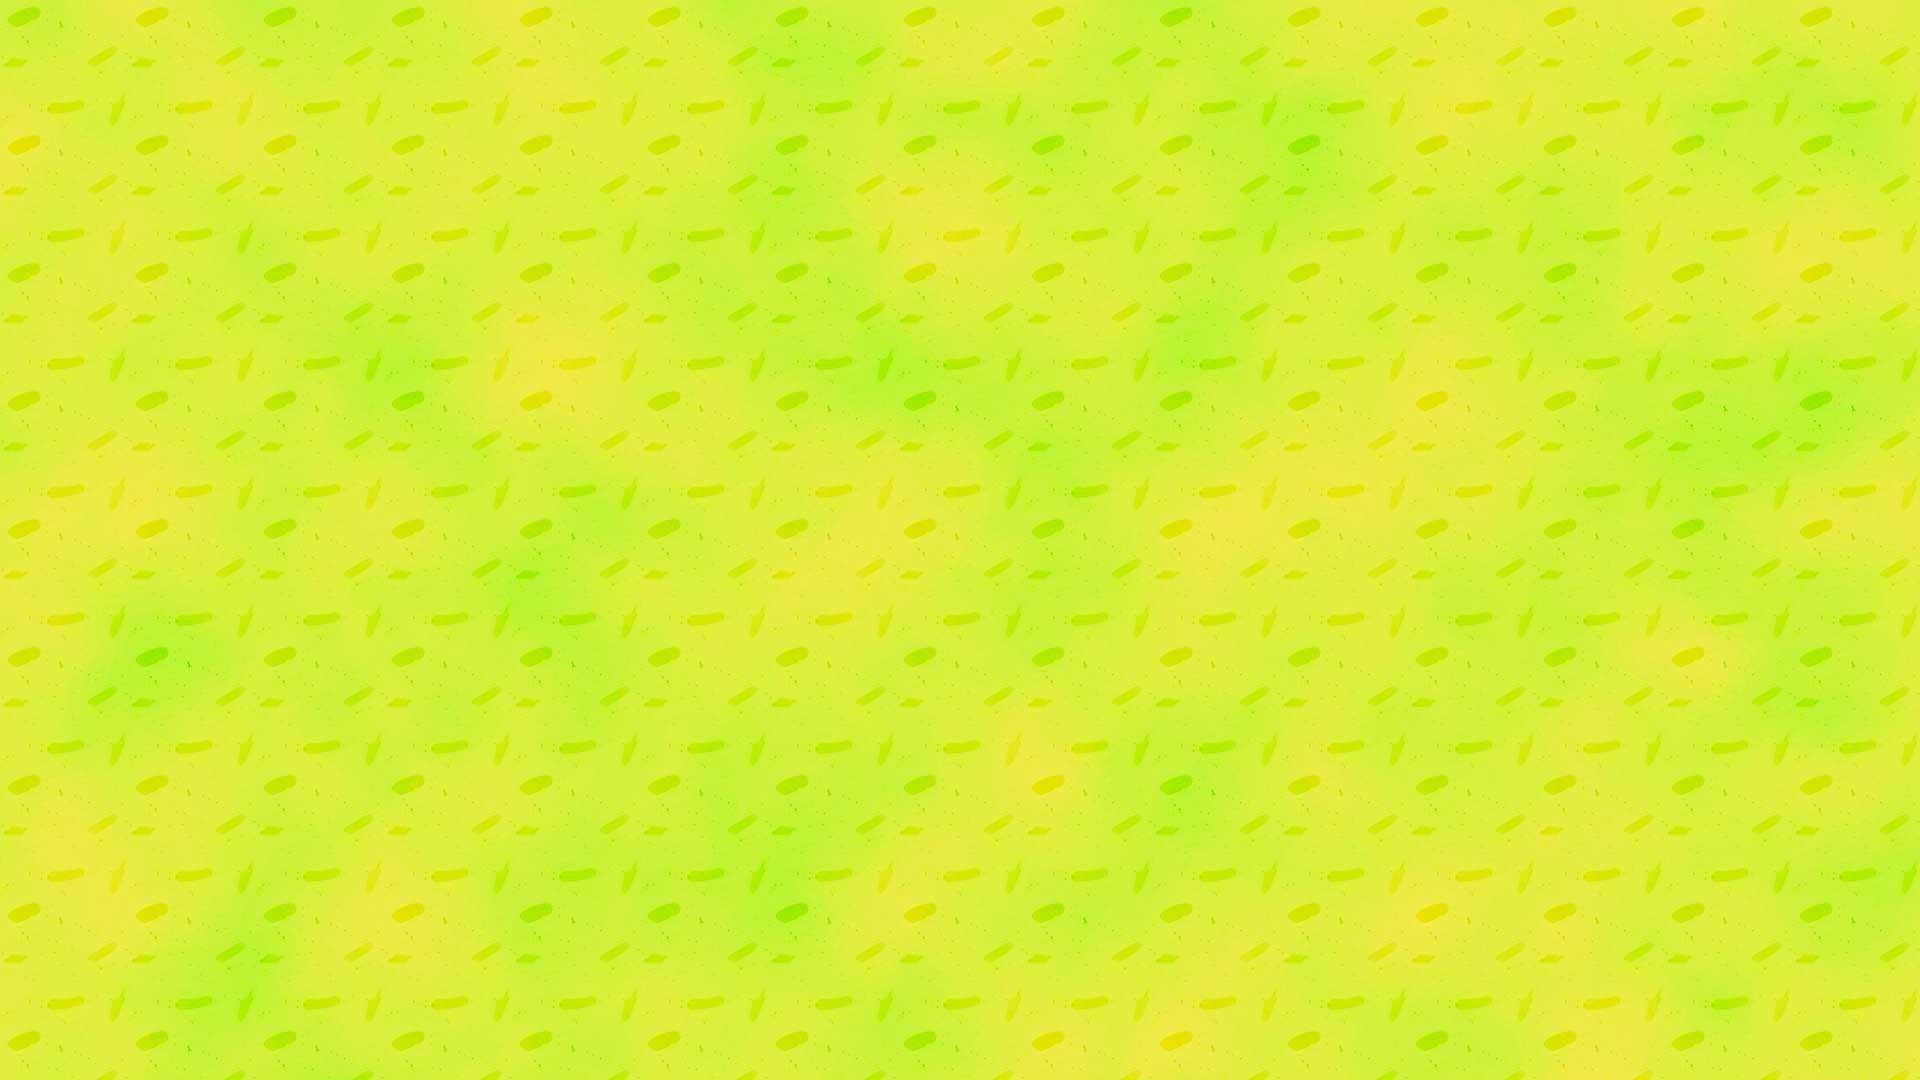 Lime Green Backgrounds (54+ Images